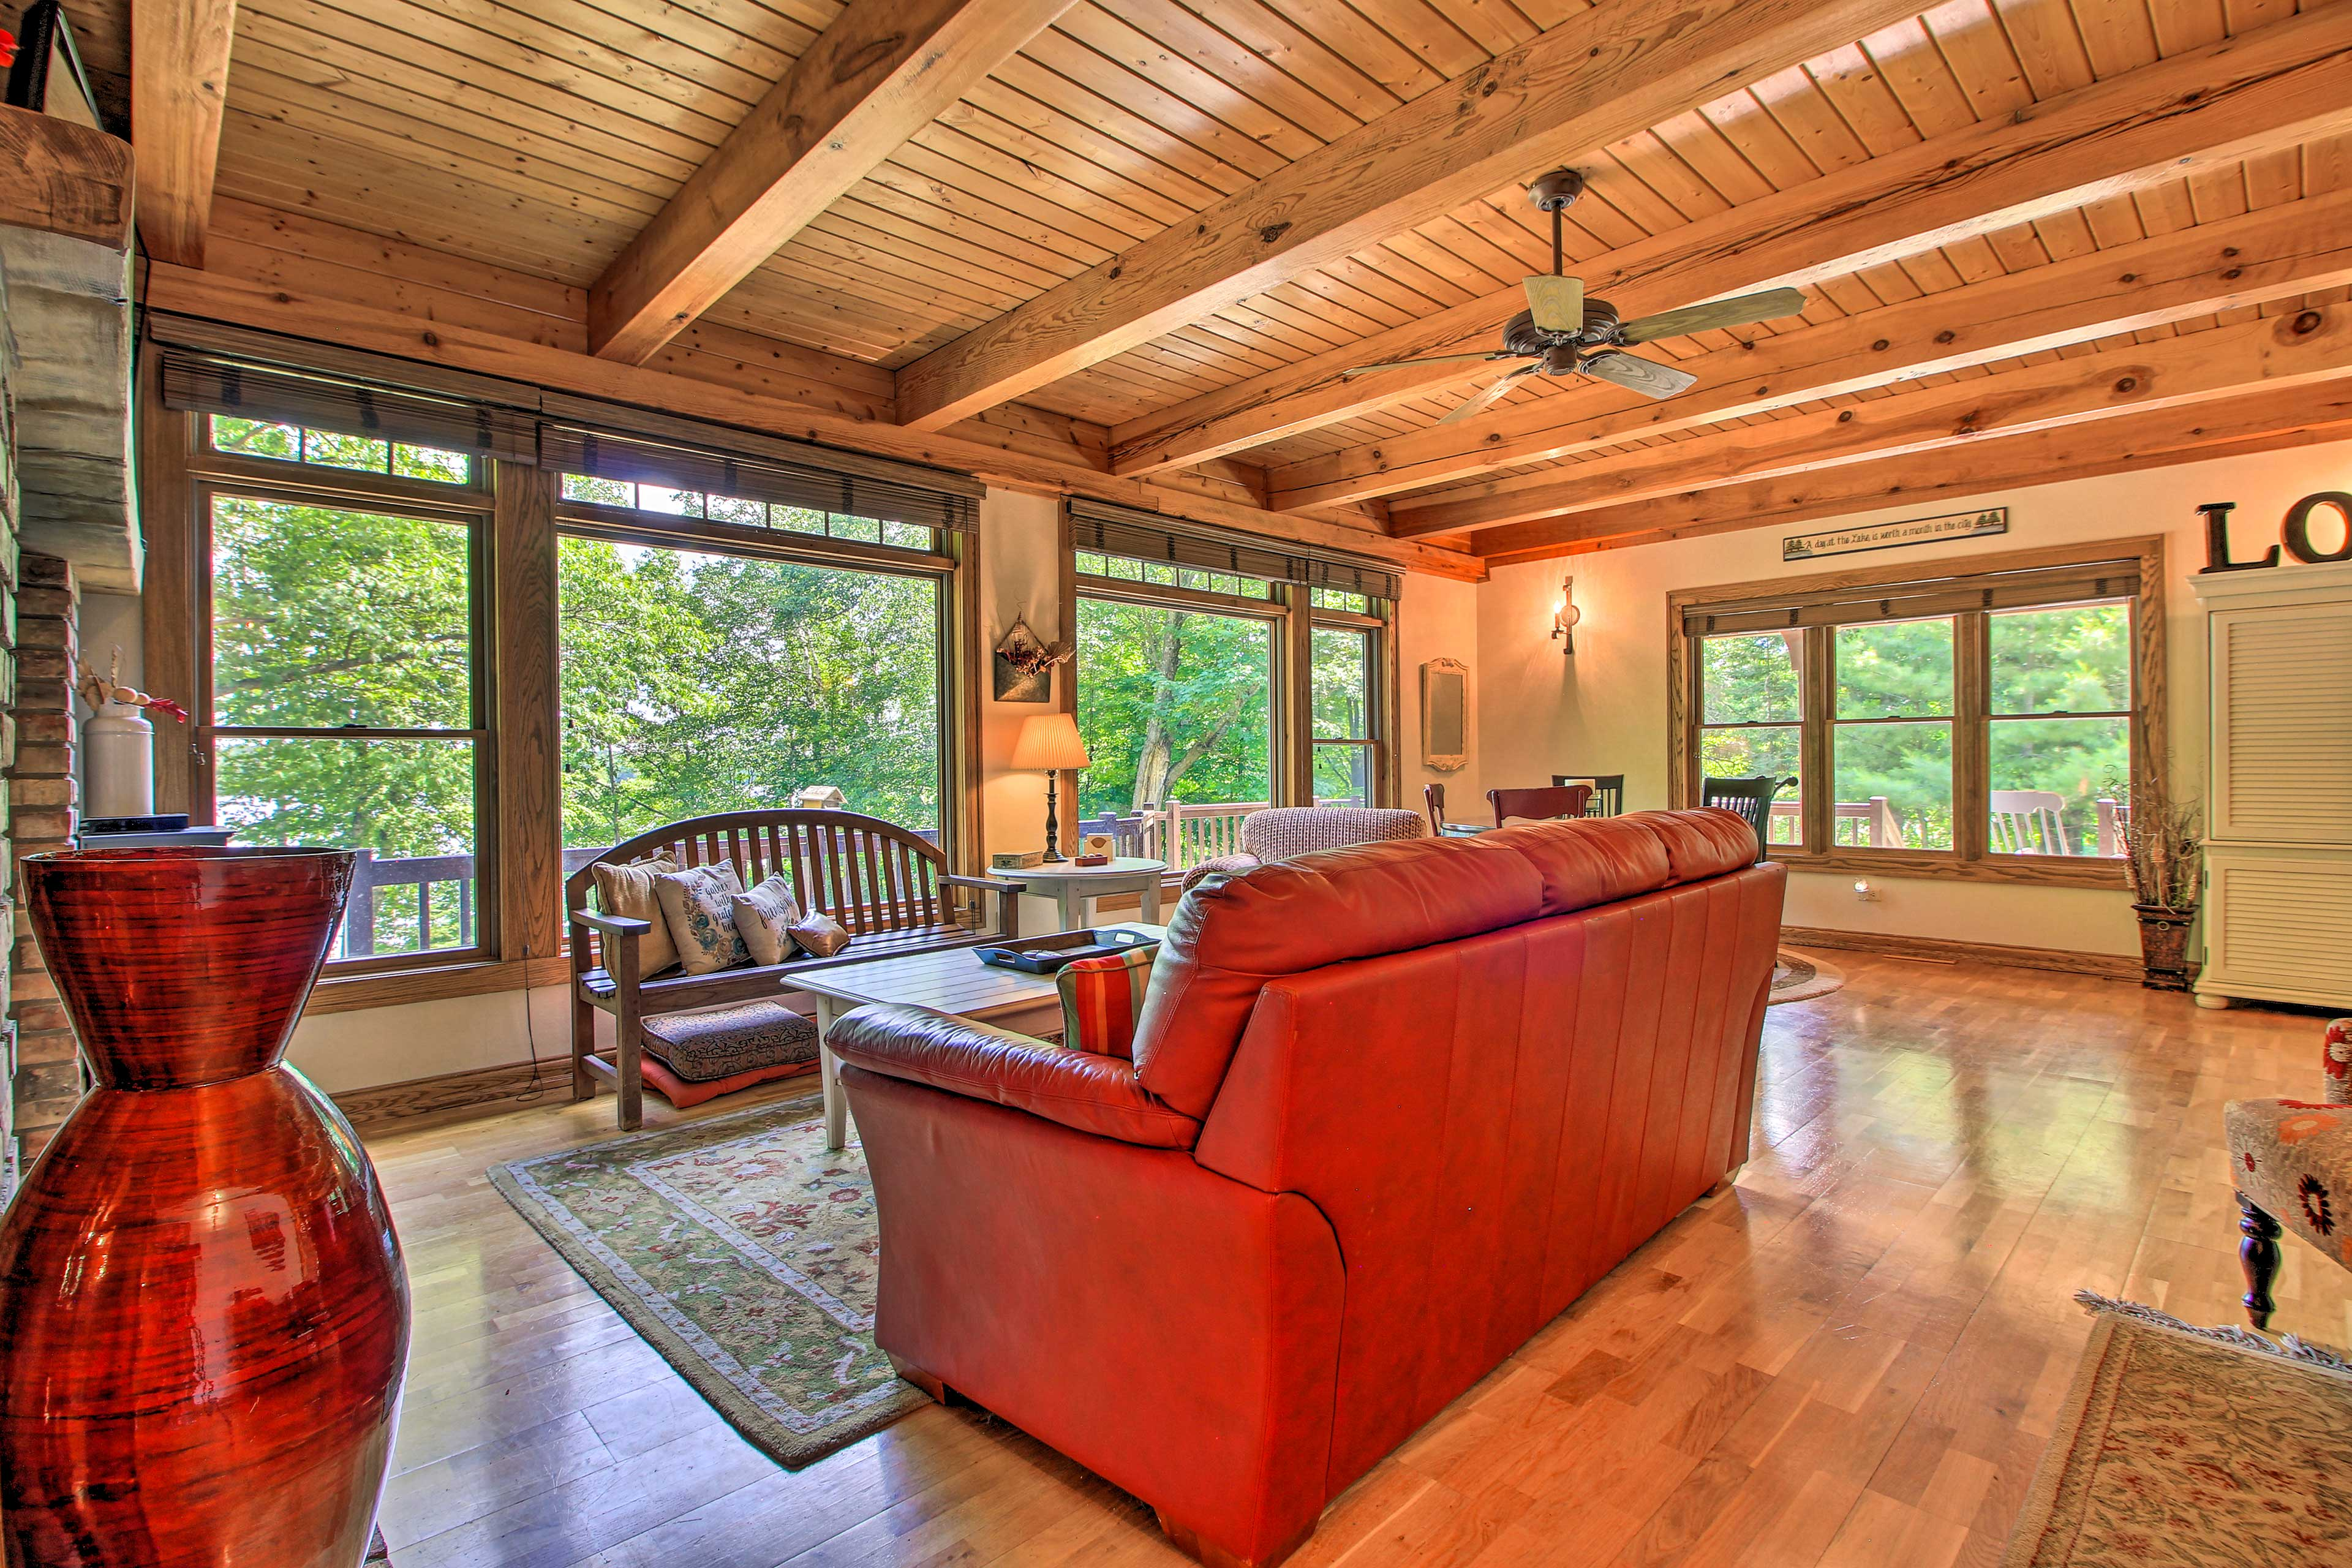 The spacious living room is perfect for relaxing.